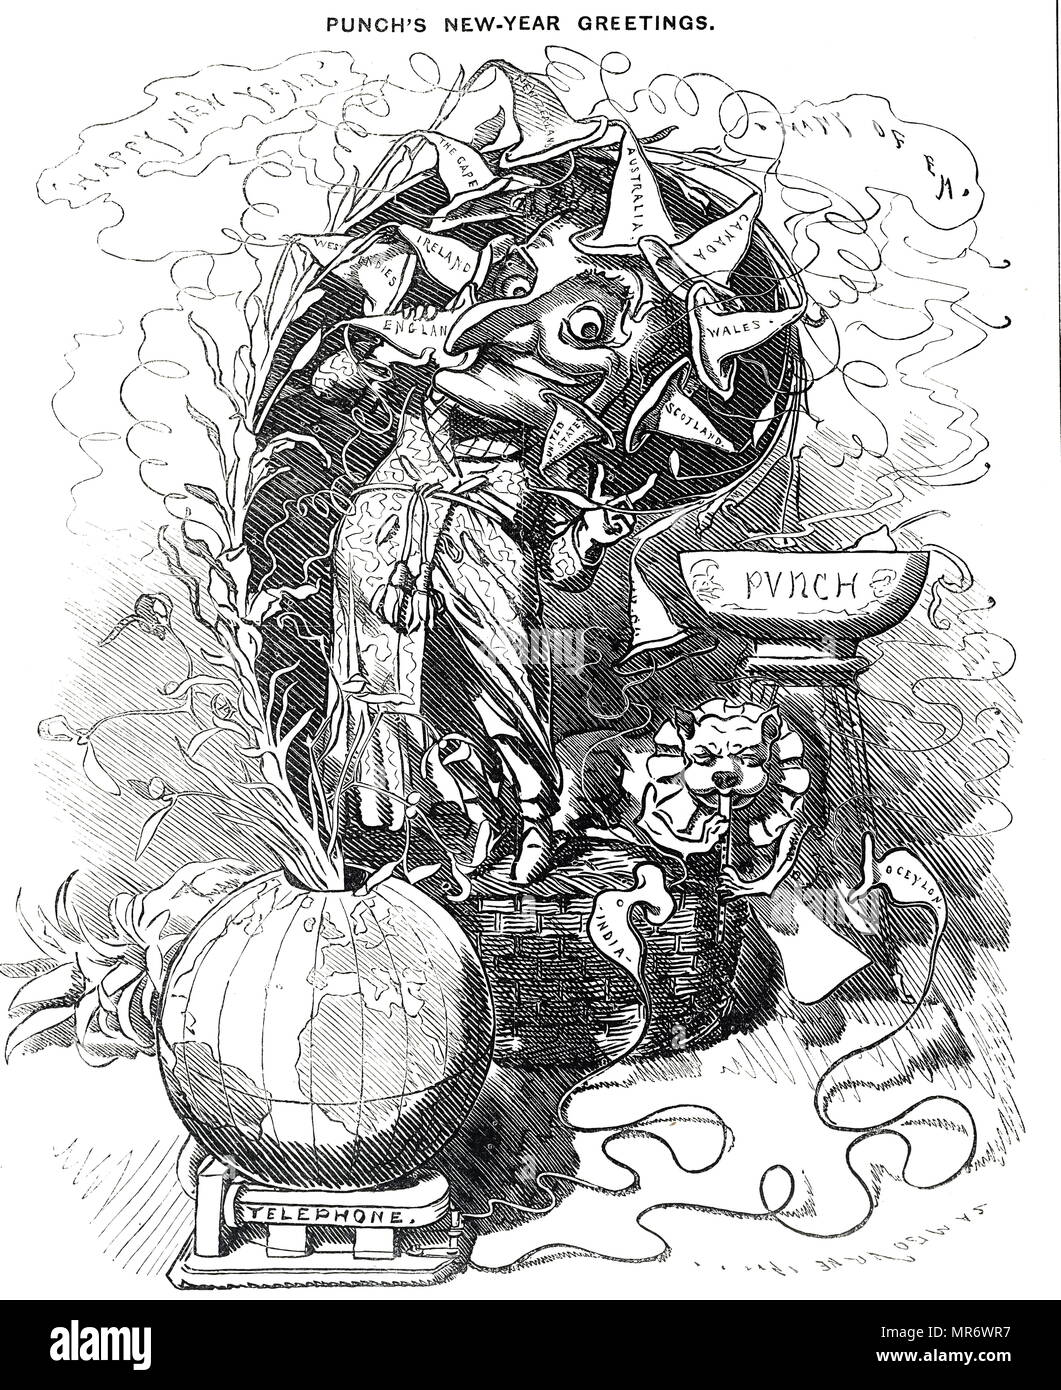 Mr Punch's New-Year Greetings to the World - by telephone. Dated 19th century - Stock Image